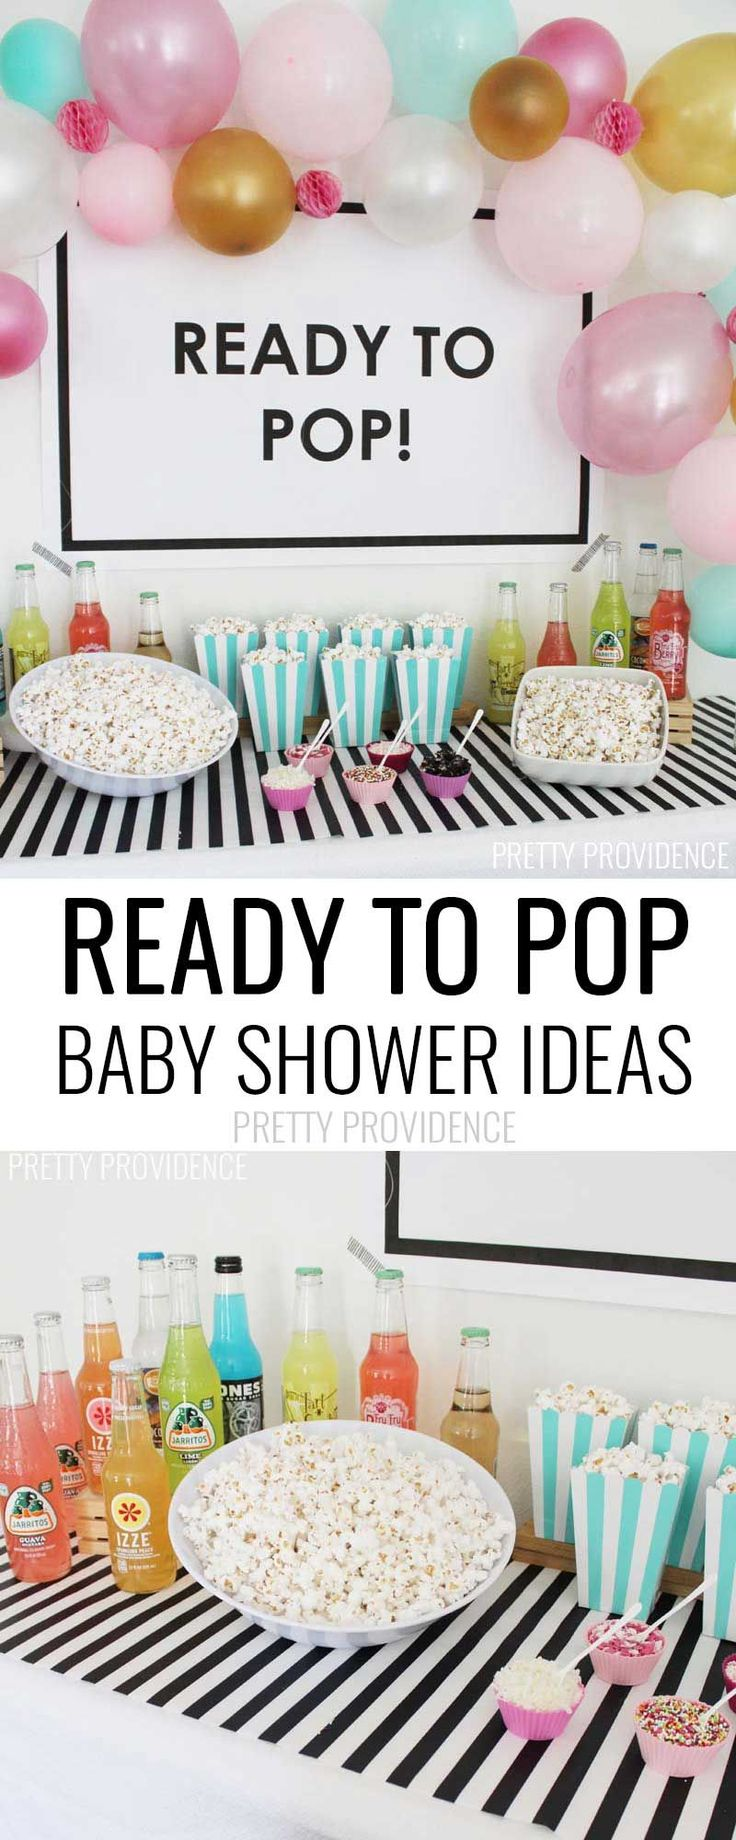 pop baby shower pop baby showers baby shower themes shower ideas baby